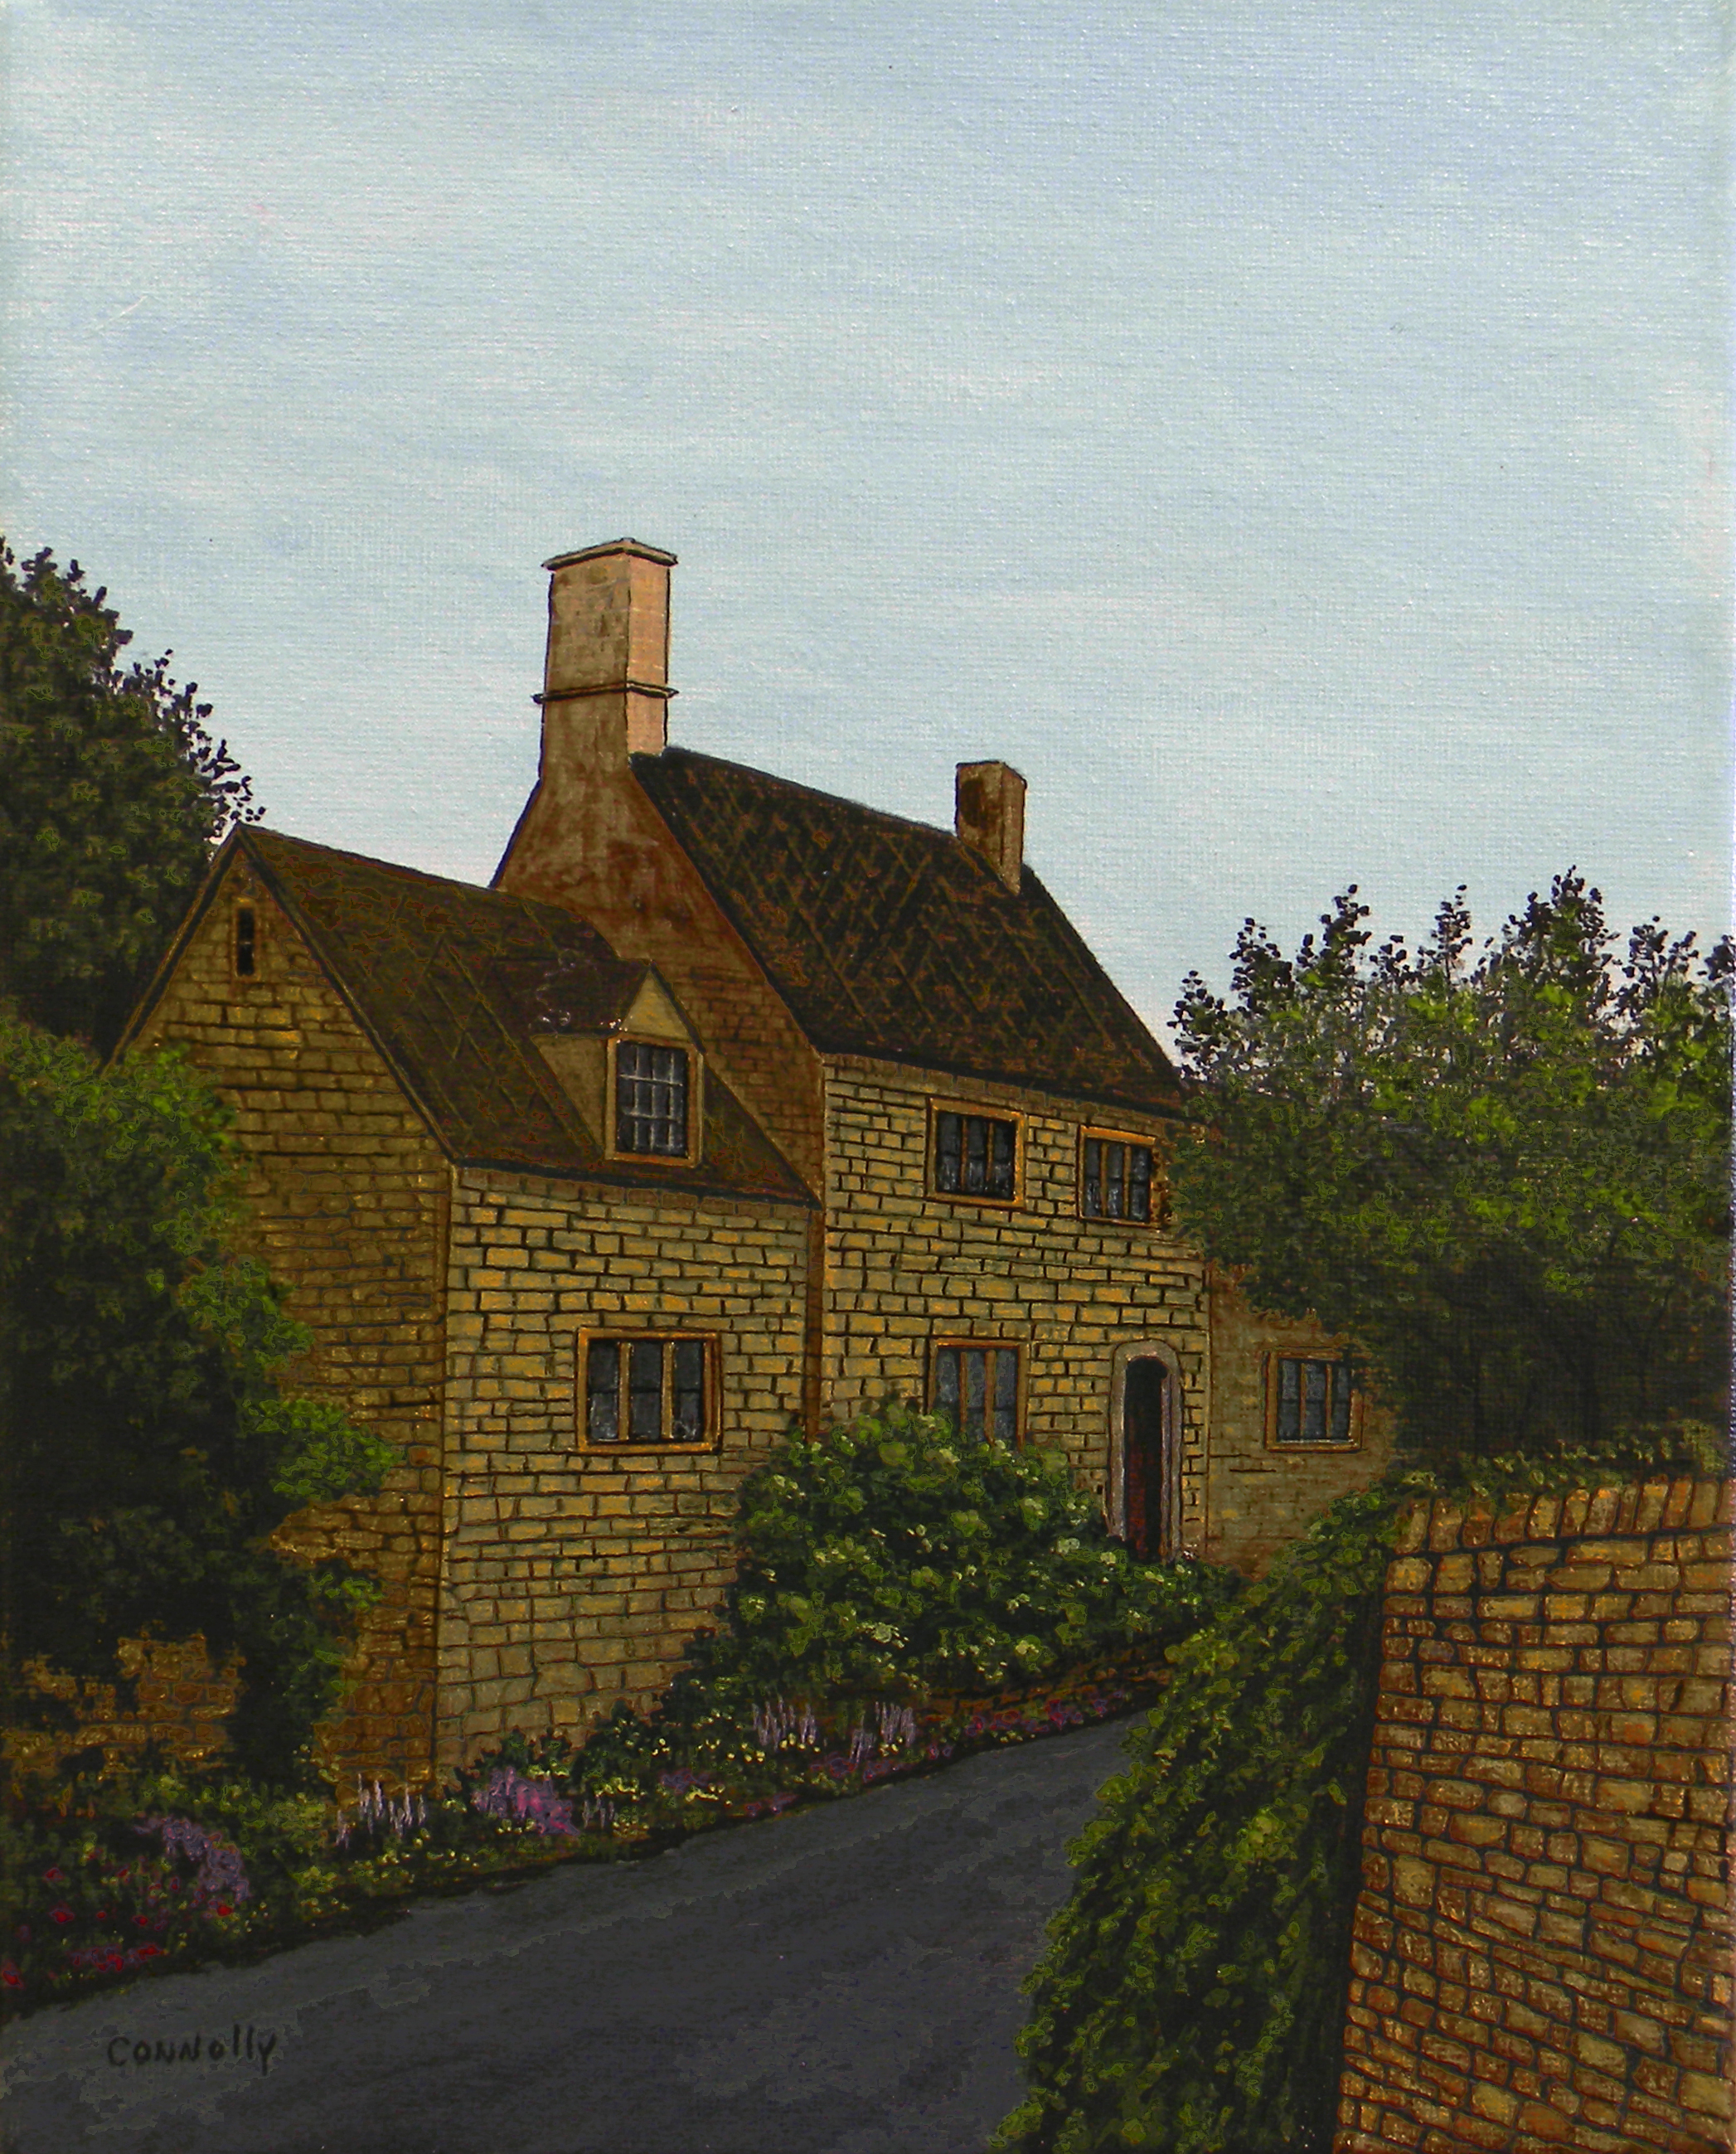 House In Ebrington (The Cotswolds)